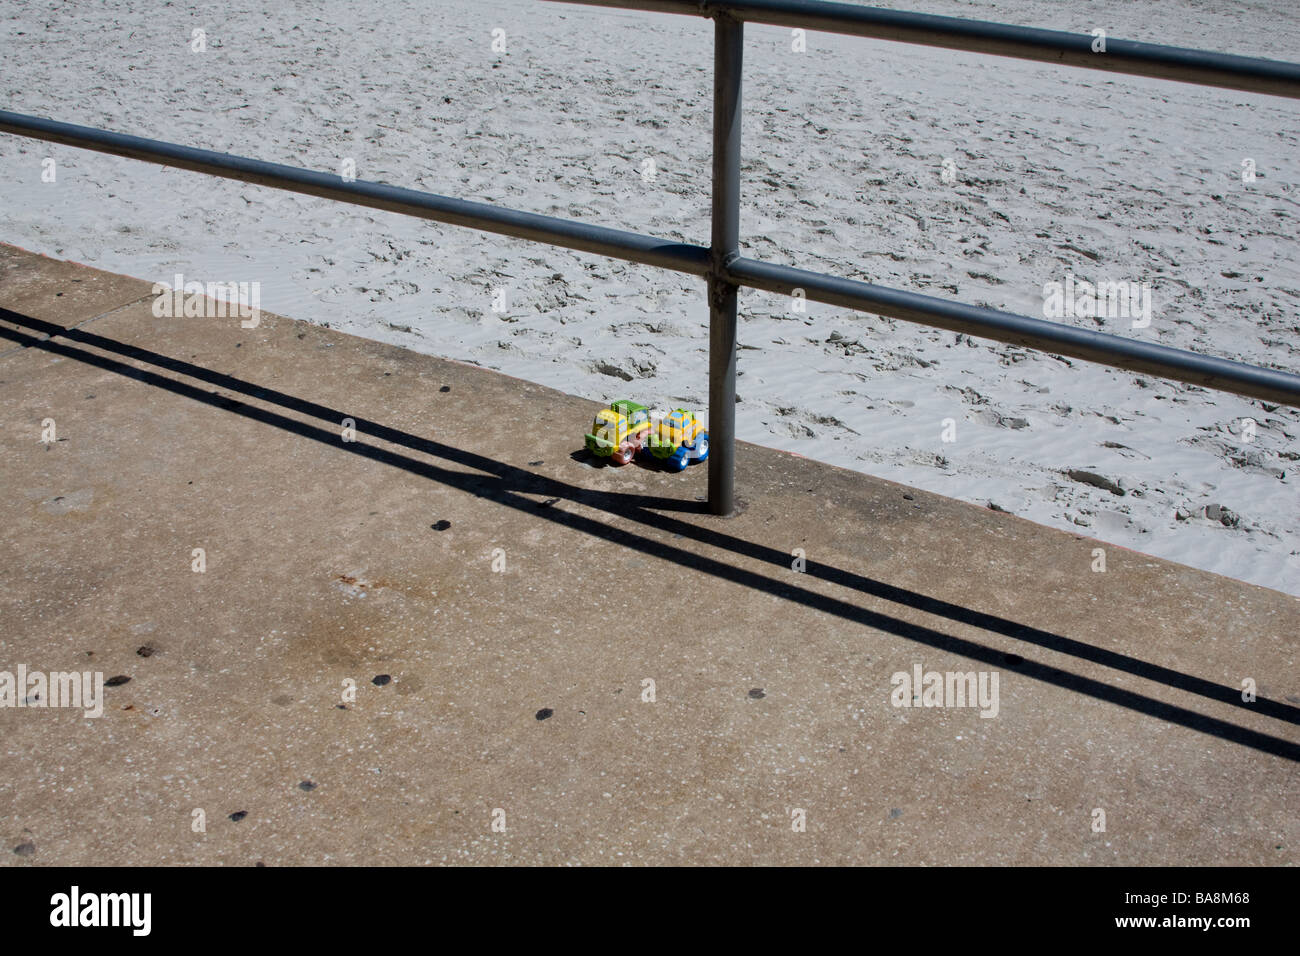 Two forgotten toys left by themselves at the ocean beach waiting for another child to find them and play with them - Stock Image